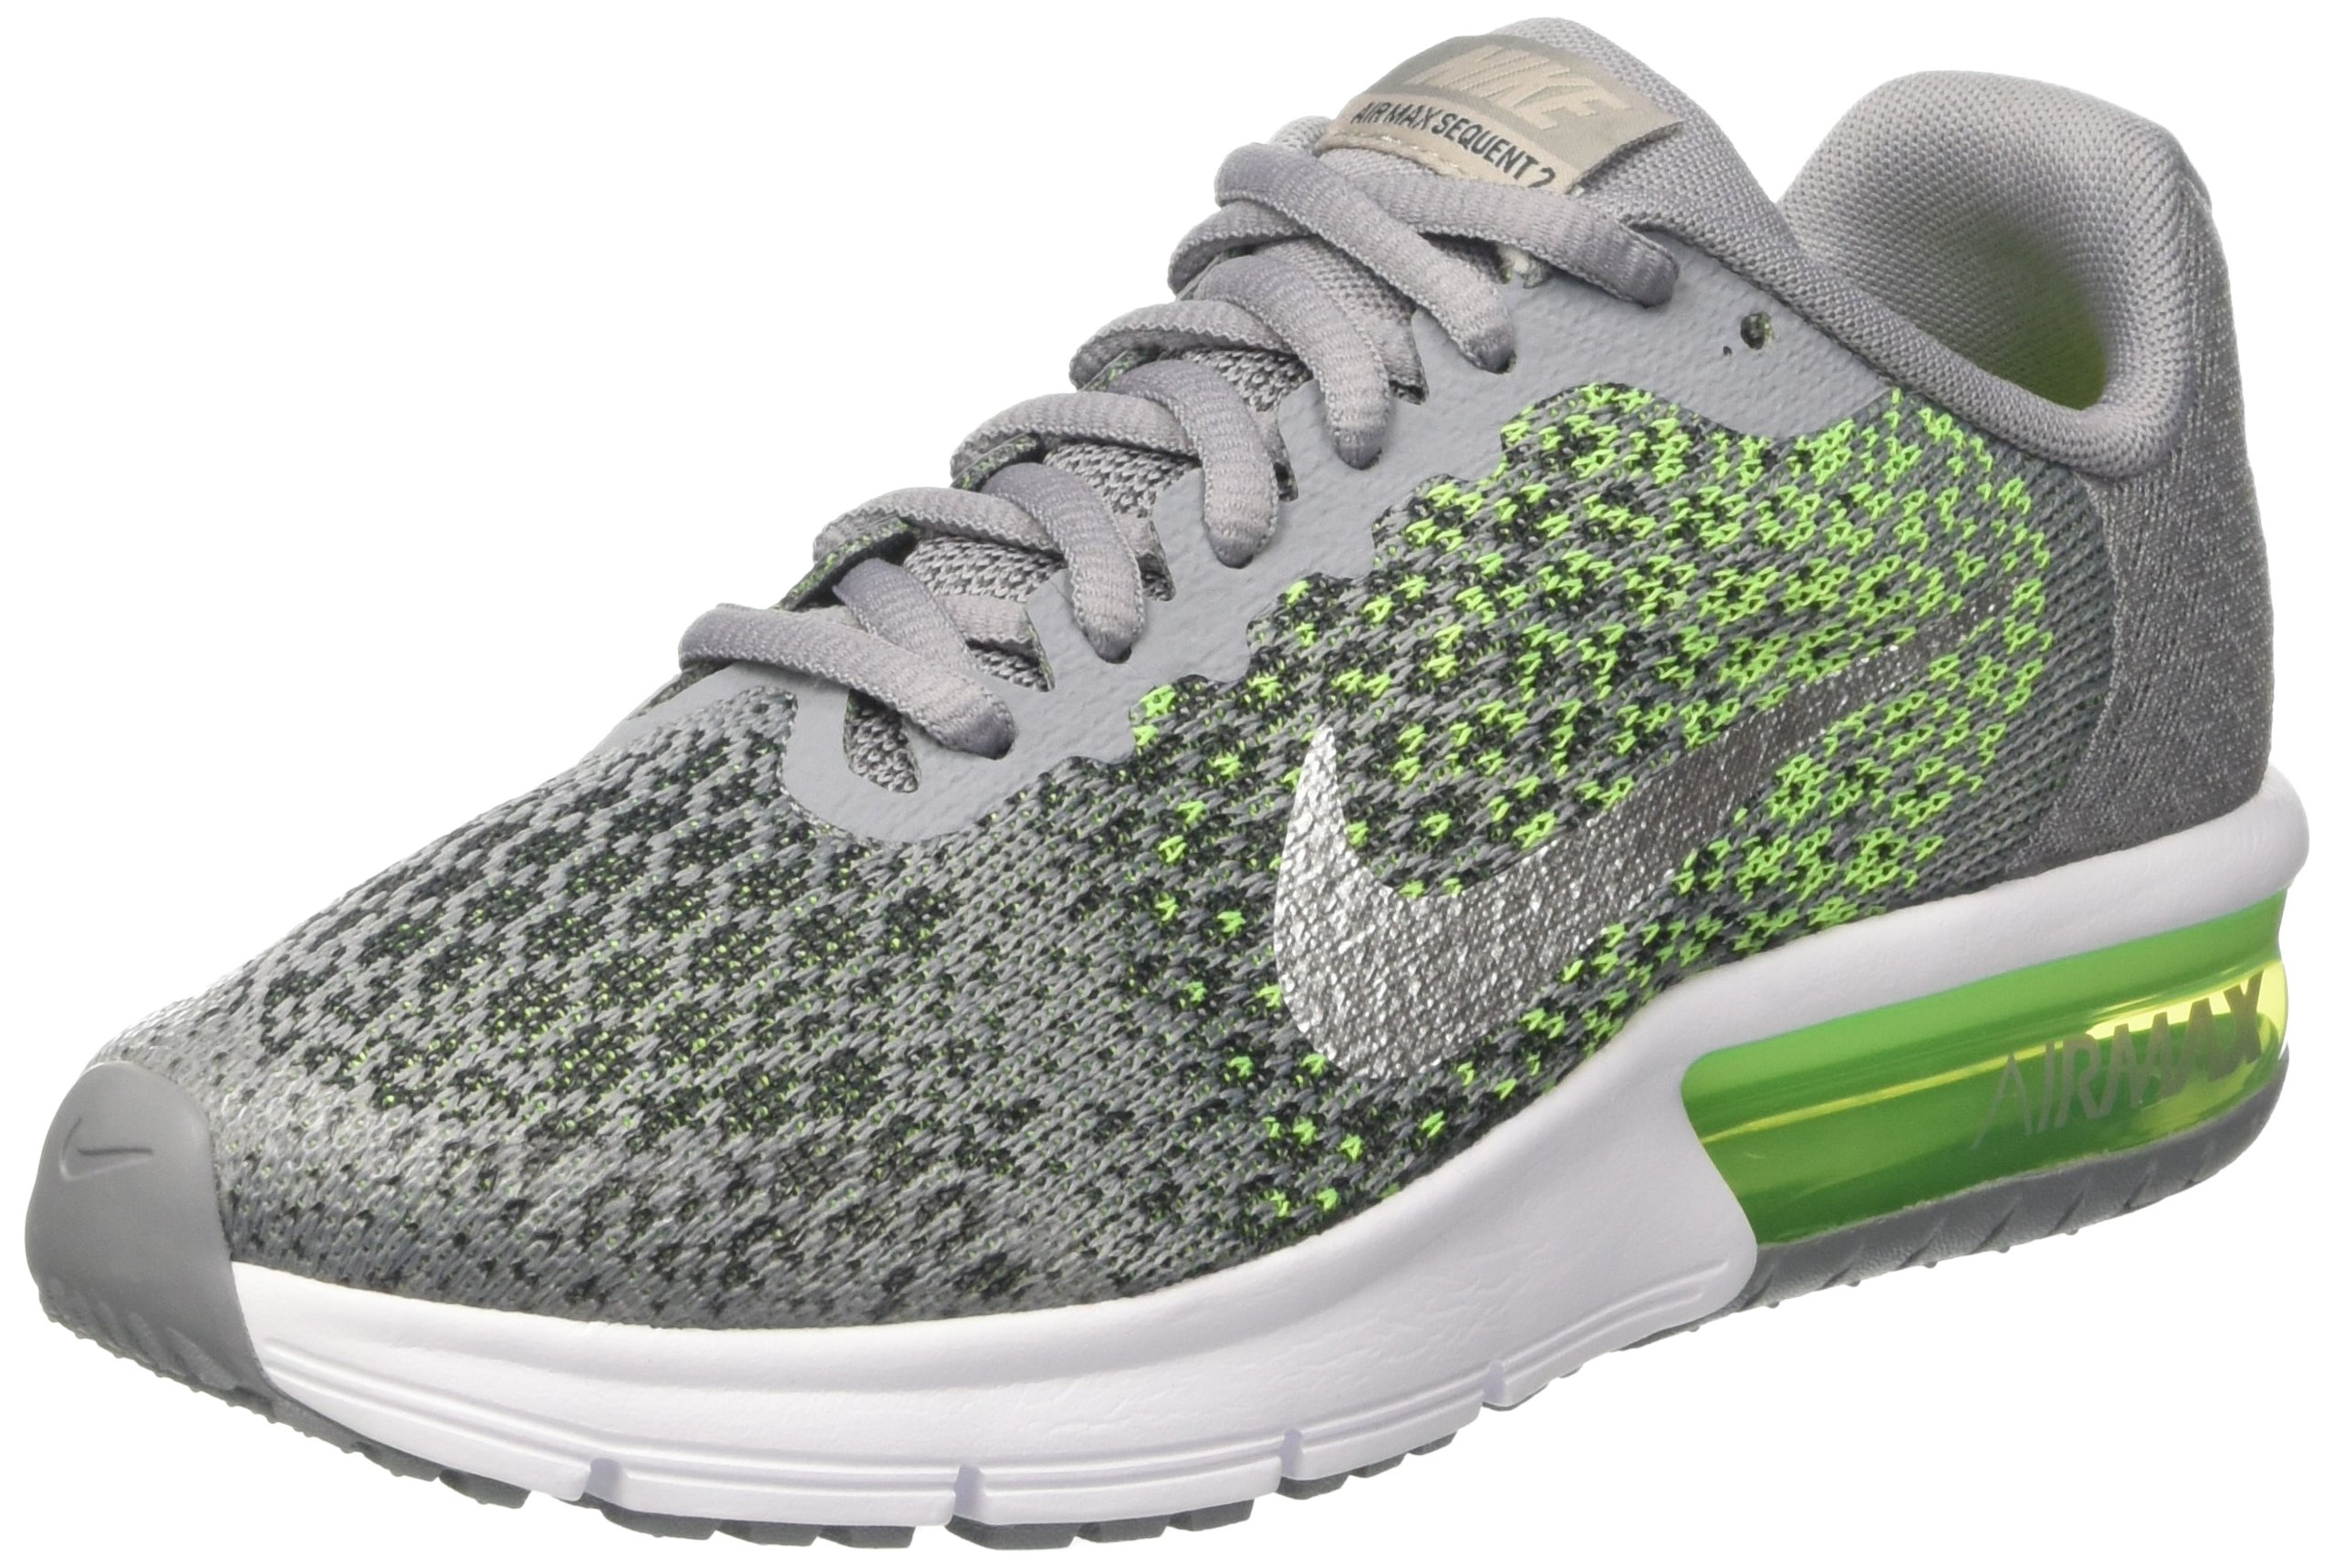 NIKE Boys' Air Max Sequent 2 Running Shoe (GS), StealthMetallic SilverElectric Green, 5 M US Big Kid